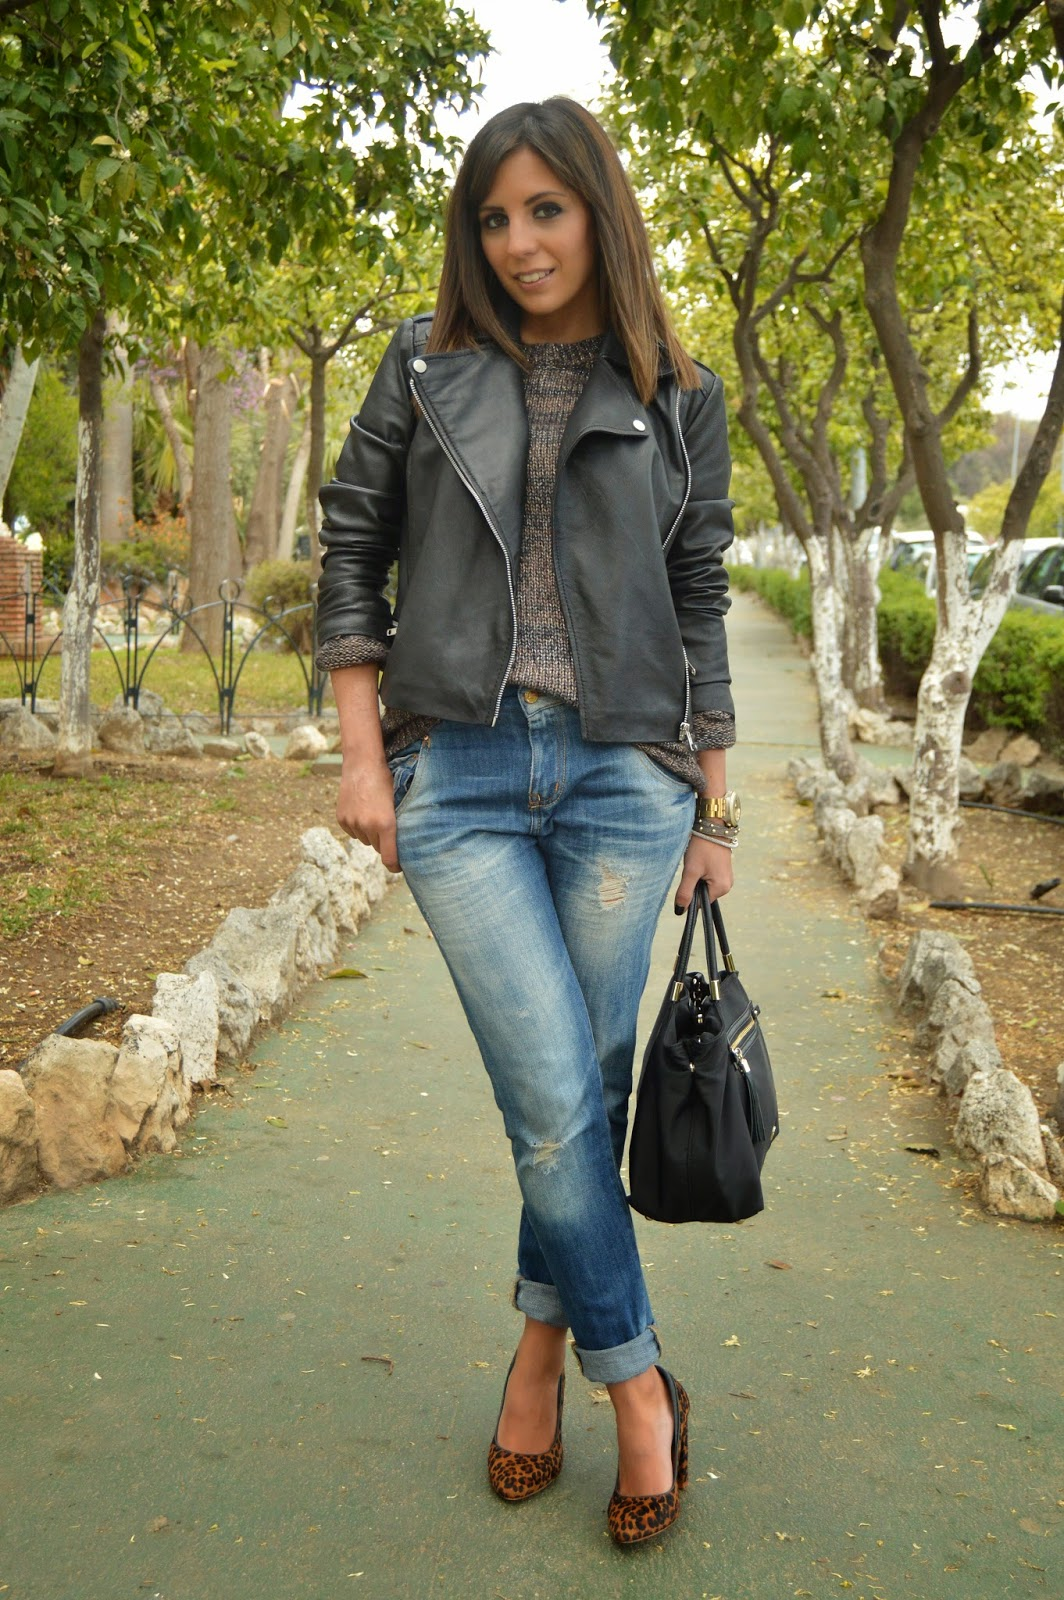 street style cristina style mango zara fashion blogger malagueña blogger malagueña outfit look chic casual jeans tweed inspiration moda mood tendencias ootd fashion